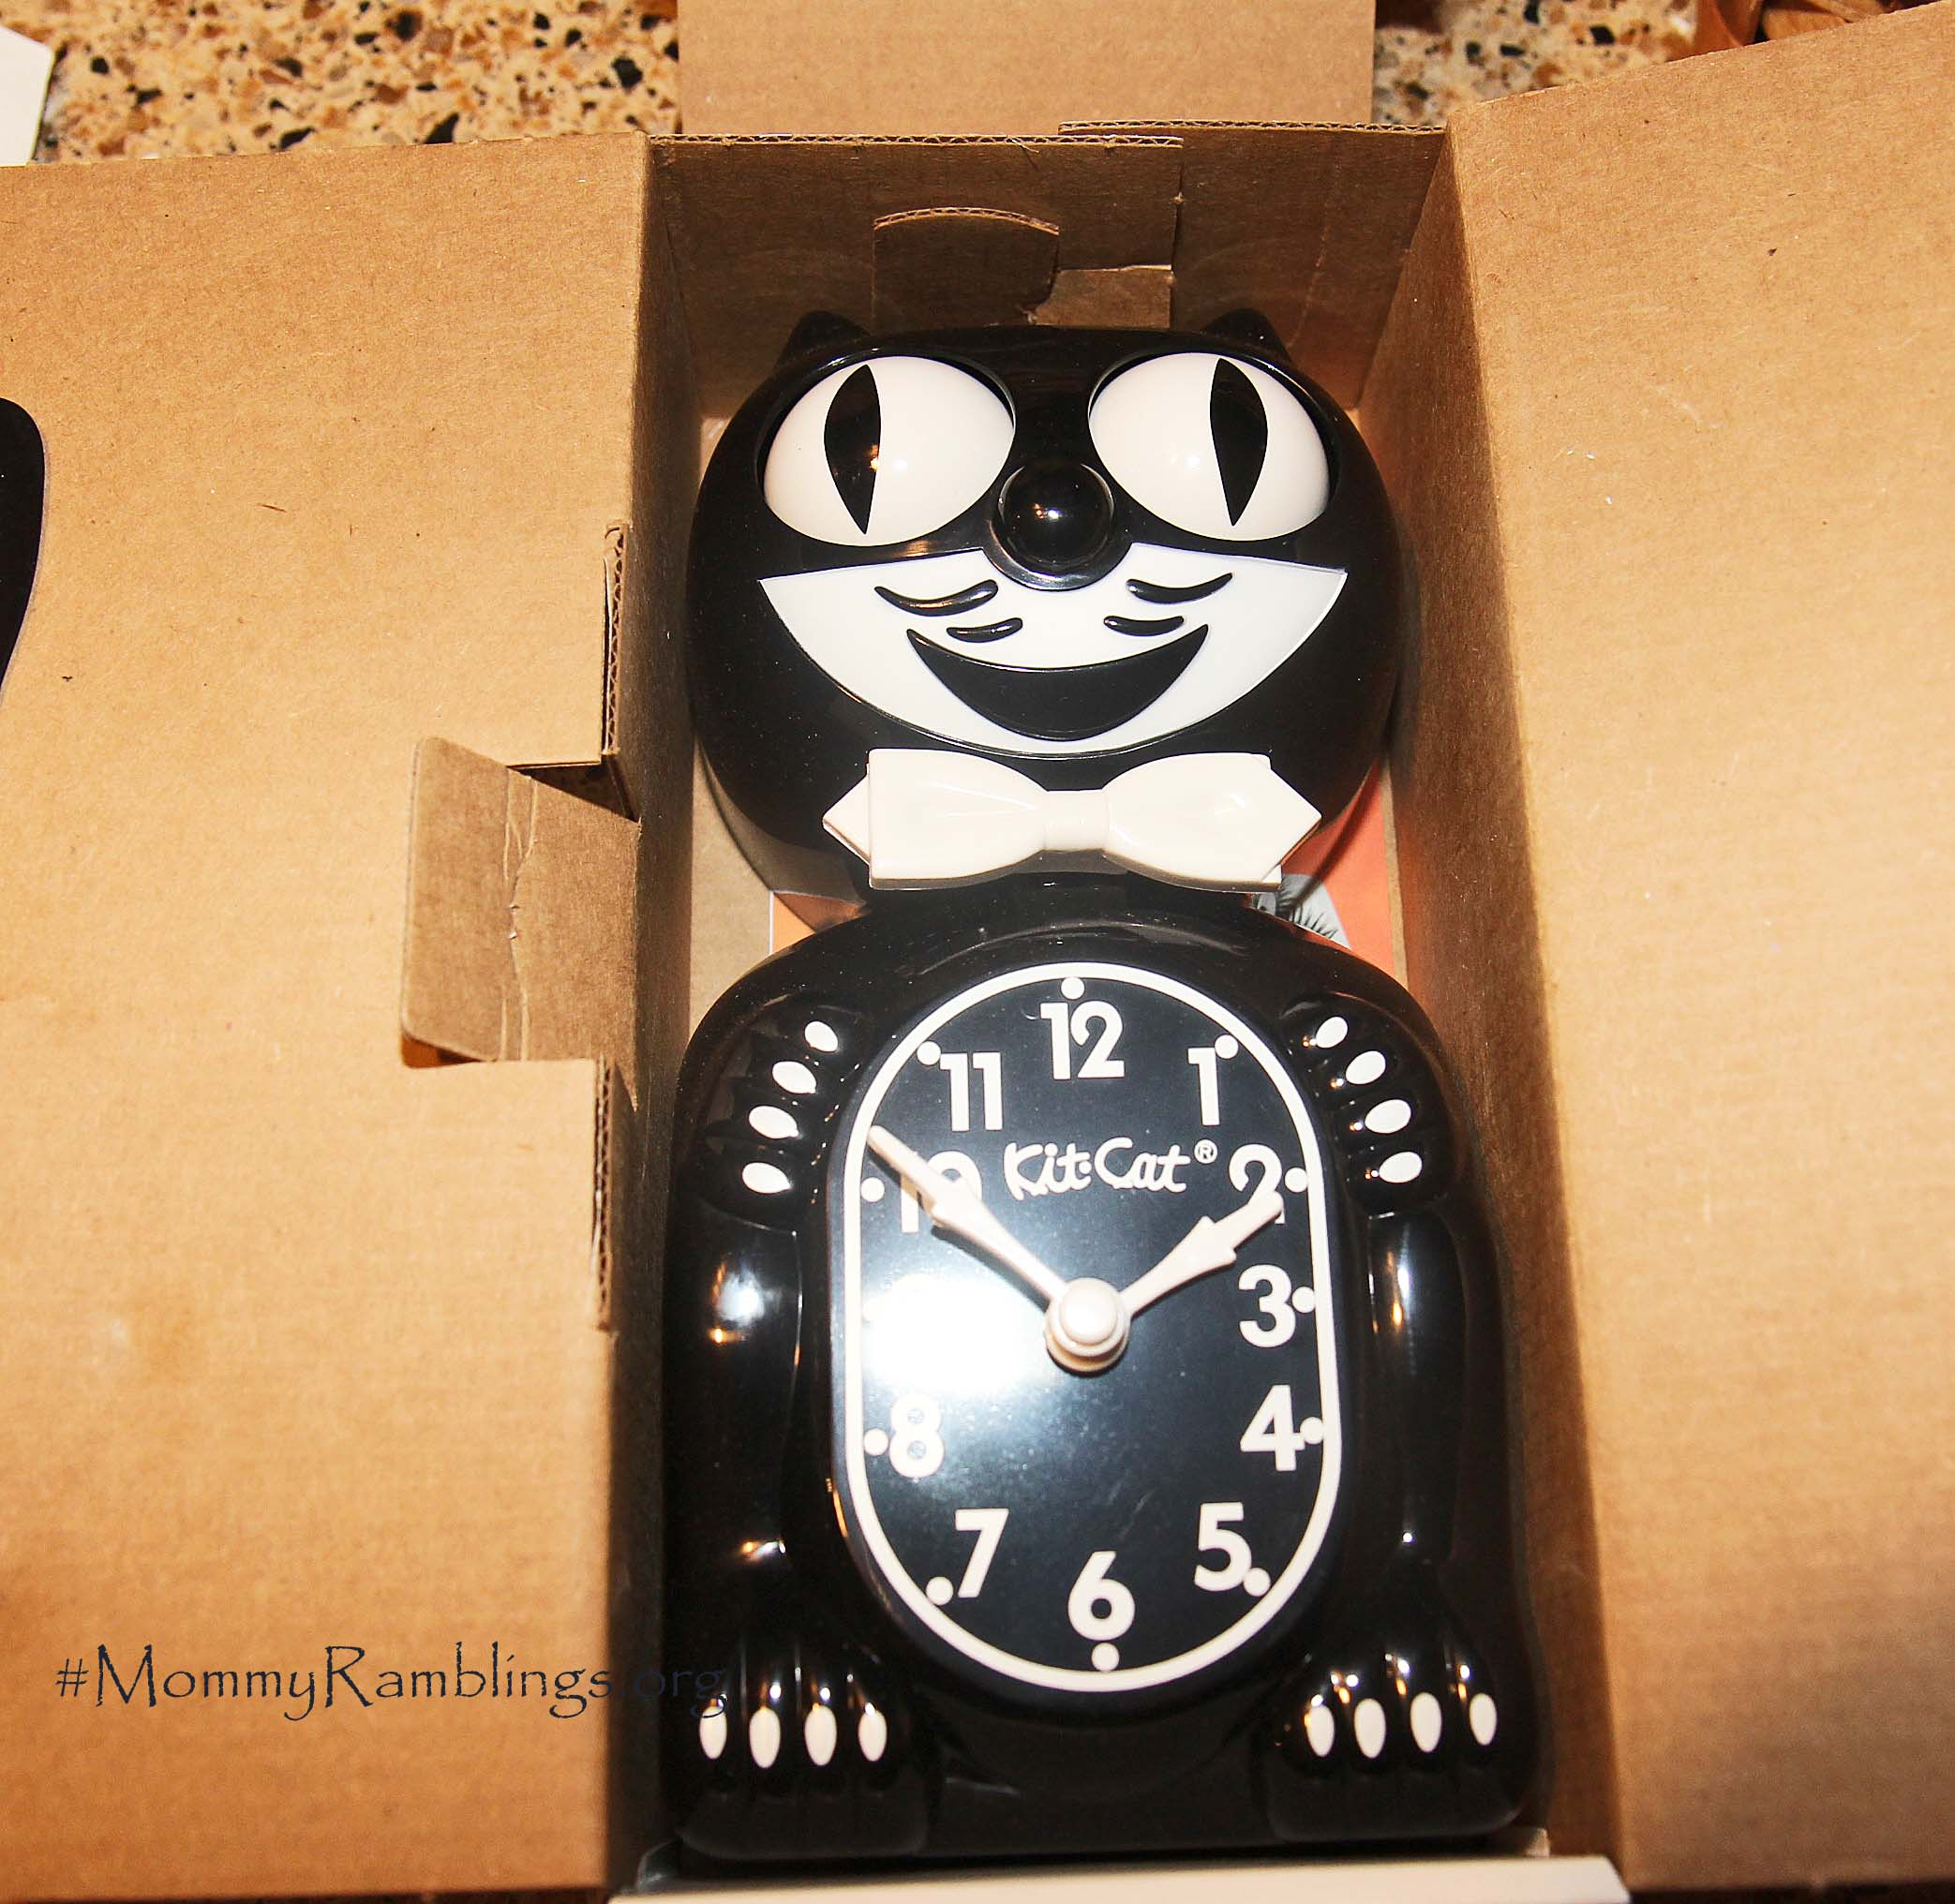 Kit Cat Clock Reminds You To Spring Ahead